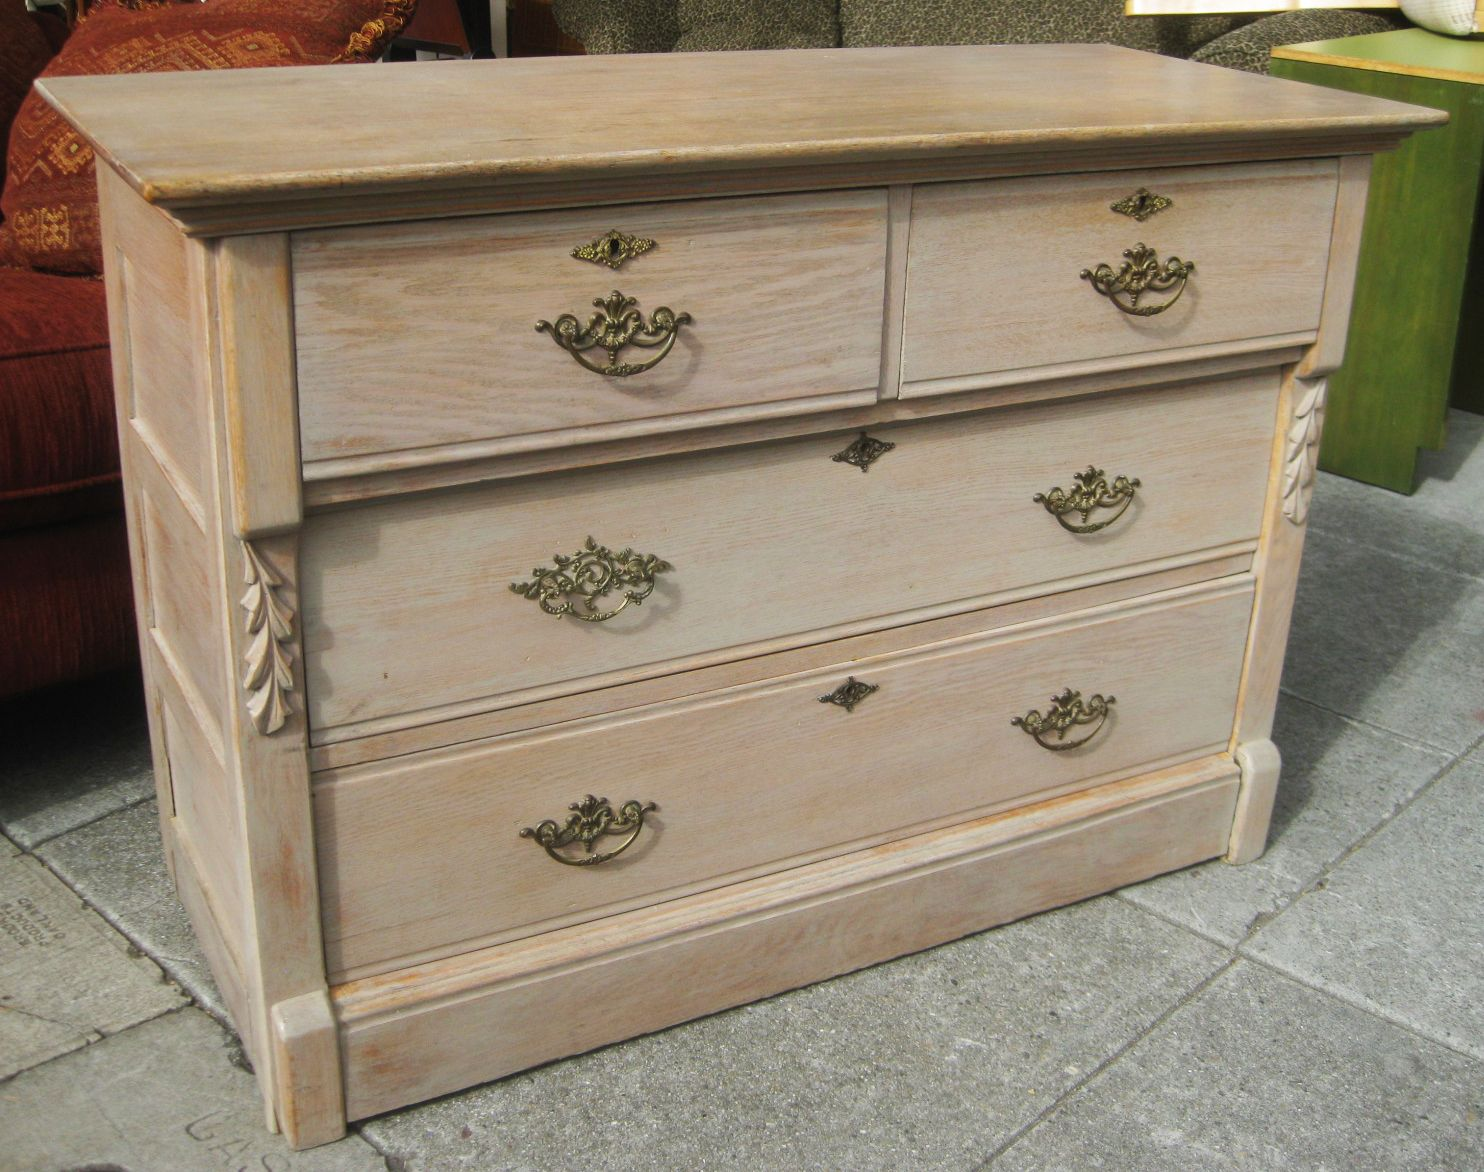 UHURU FURNITURE U0026 COLLECTIBLES: SOLD   White Washed Oak Dresser   $90